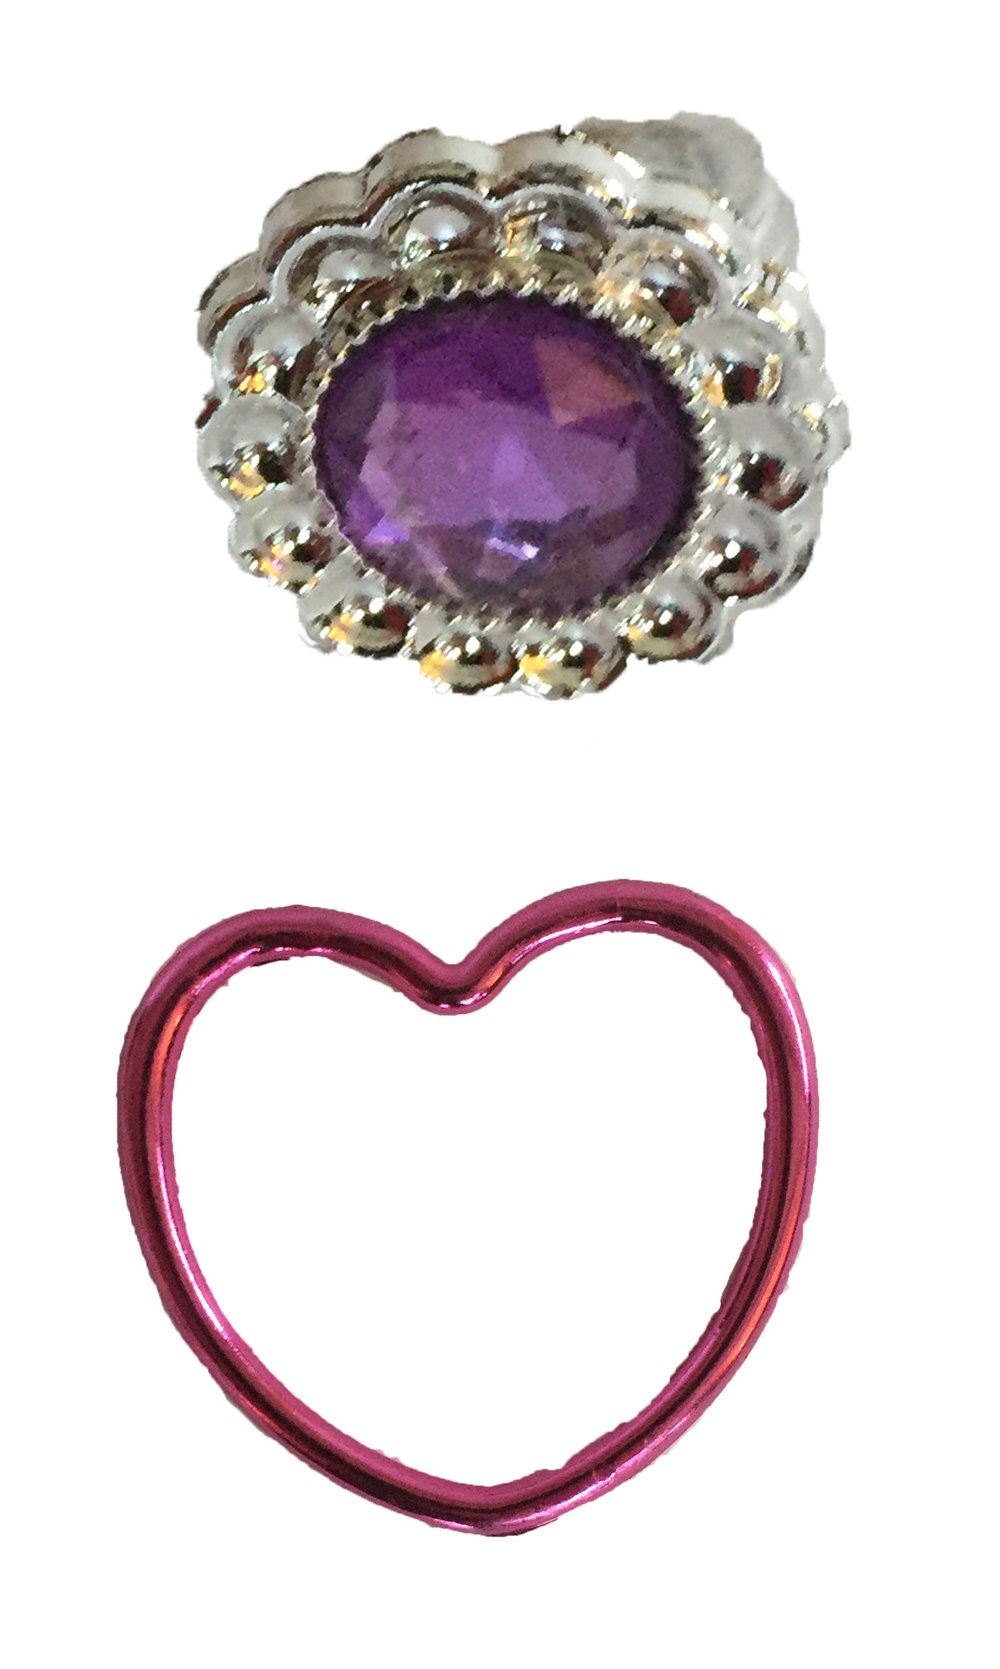 heart bracelet and ring.jpg